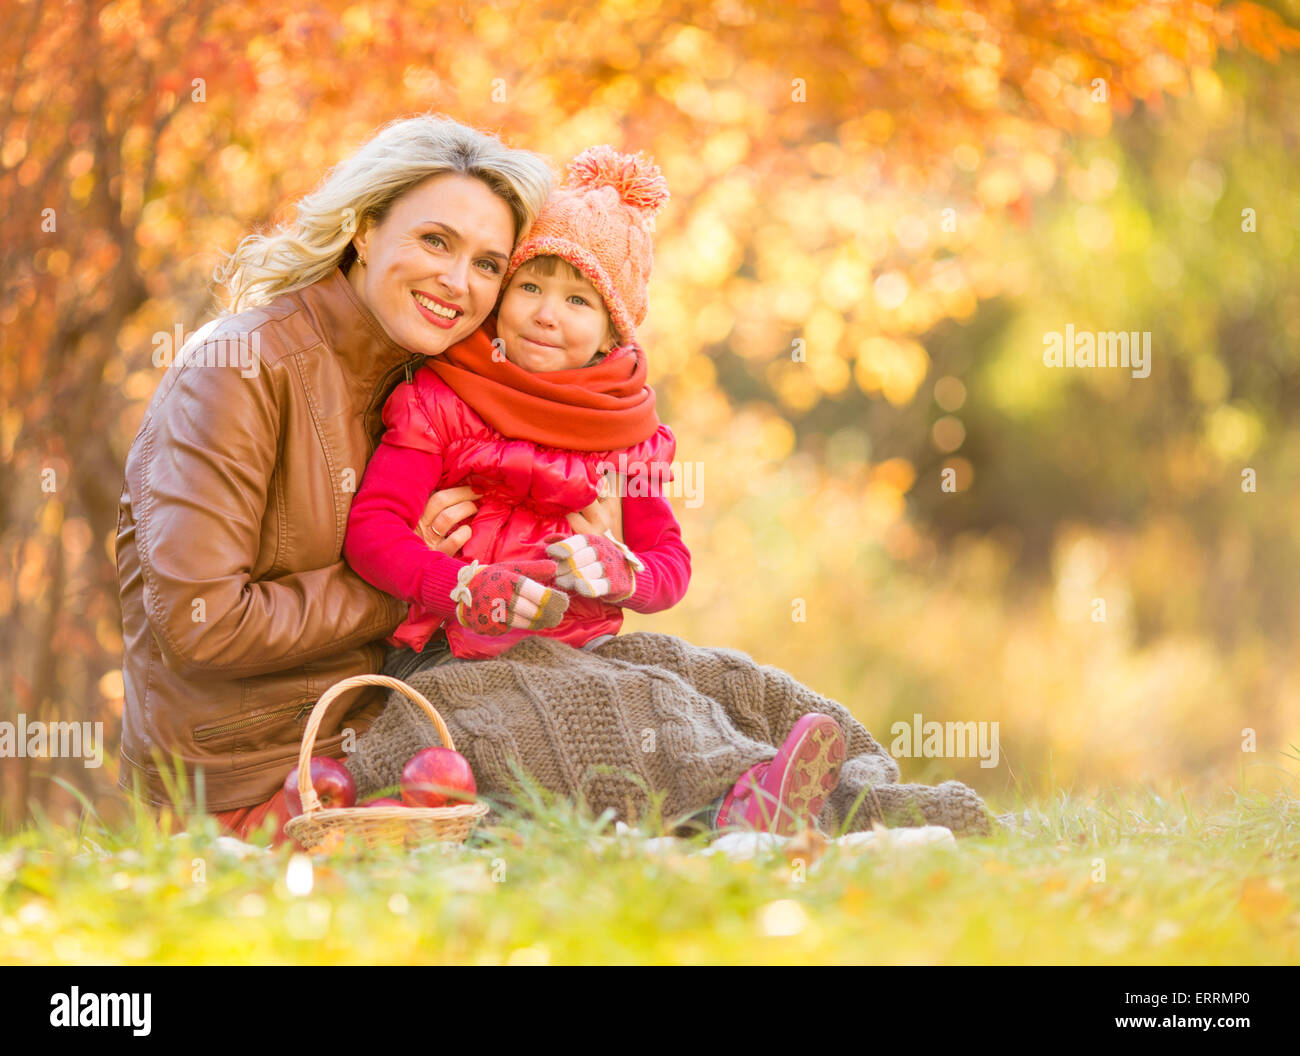 Happy mother and child sitting outdoor in autumn - Stock Image